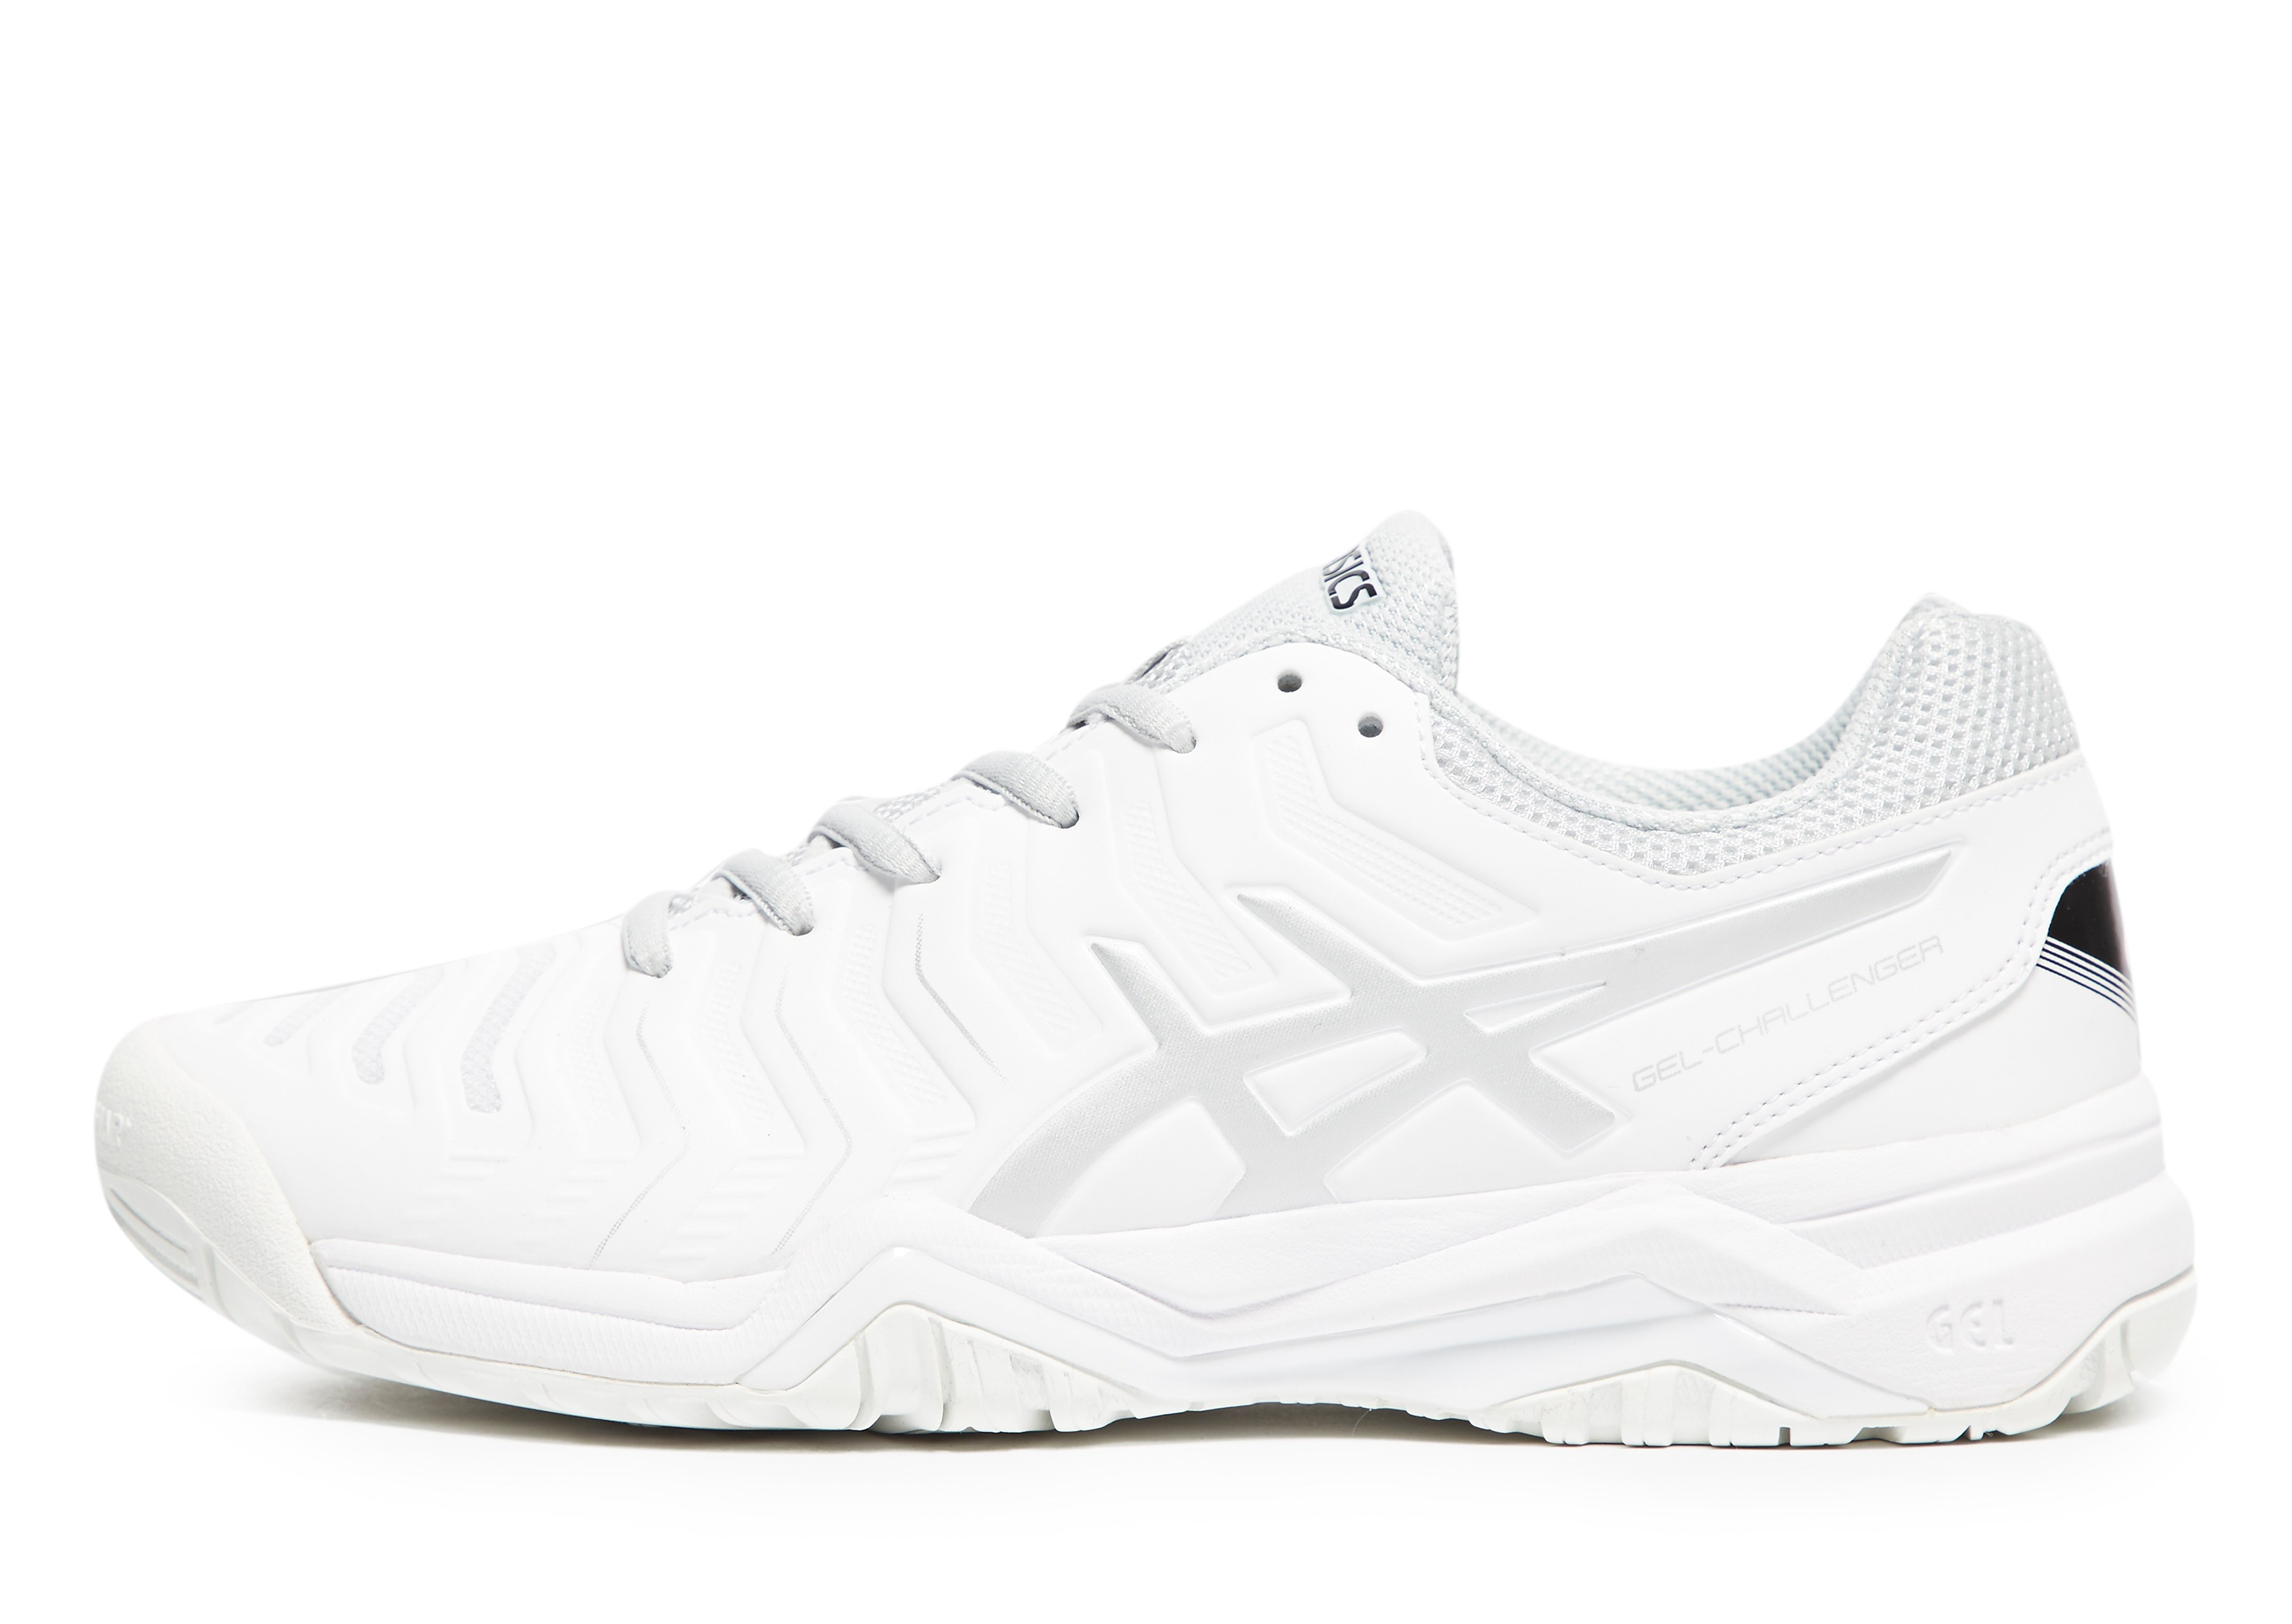 ASICS Gel-Challenger 11 Tennis Shoes Women's